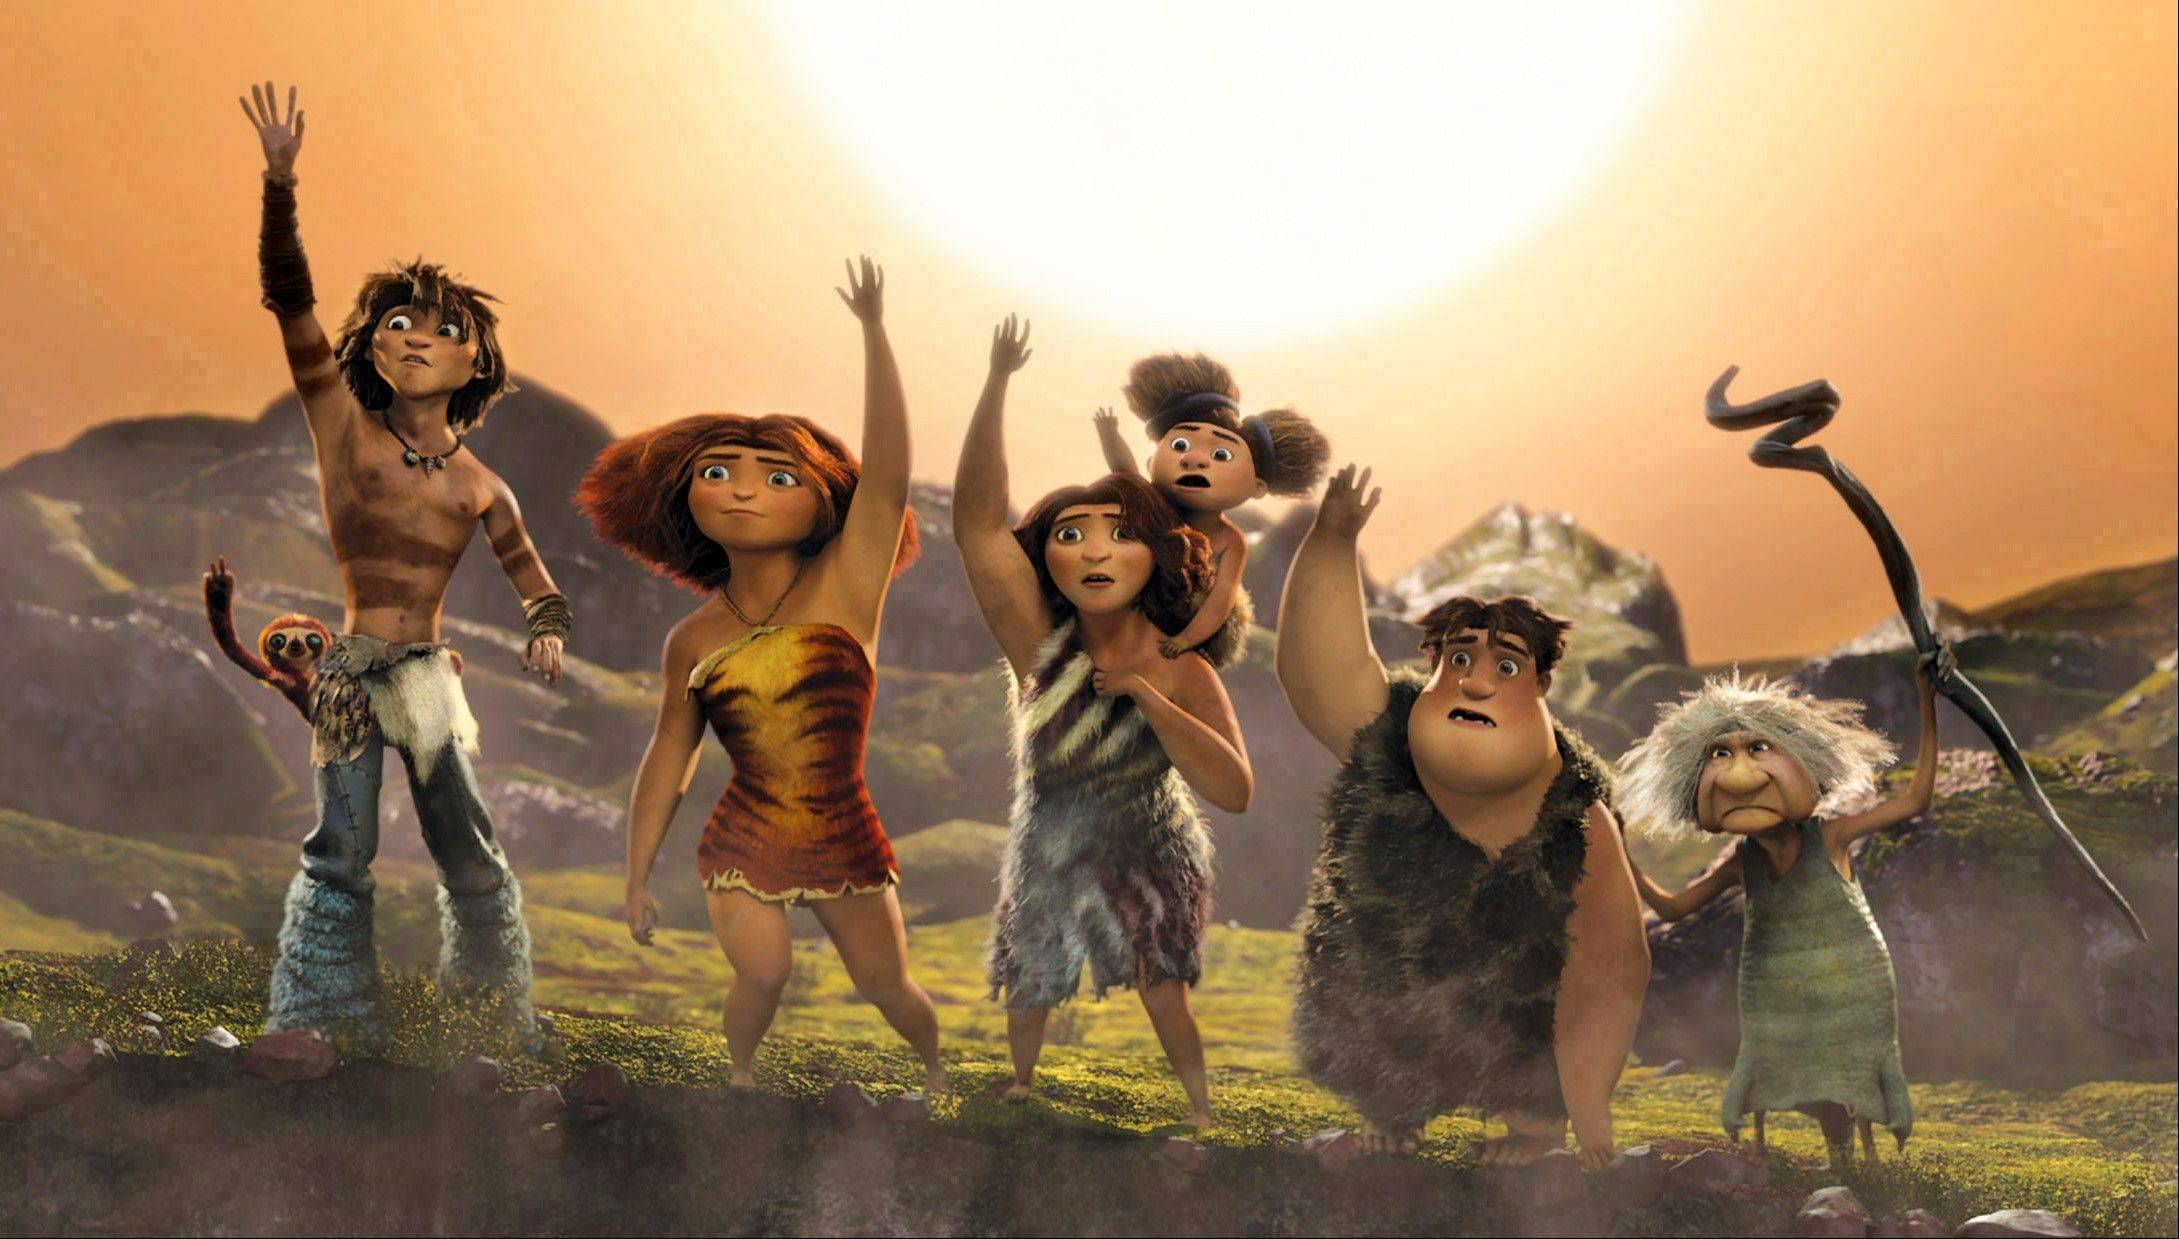 This film publicity image released by DreamWorks Animation shows, from left, Belt the sloth, voiced by Chris Sanders, Guy, voiced by Ryan Reynolds, Eep, voiced by Emma Stone, Ugga, voiced by Catherine Keener, holding Sandy, voiced by Randy Thom, Thunk, voiced by Clark Duke, Gran, voiced by Cloris Leachman, in a scene from �The Croods.� The 3-D film opened at No. 1 with $44.7 million.